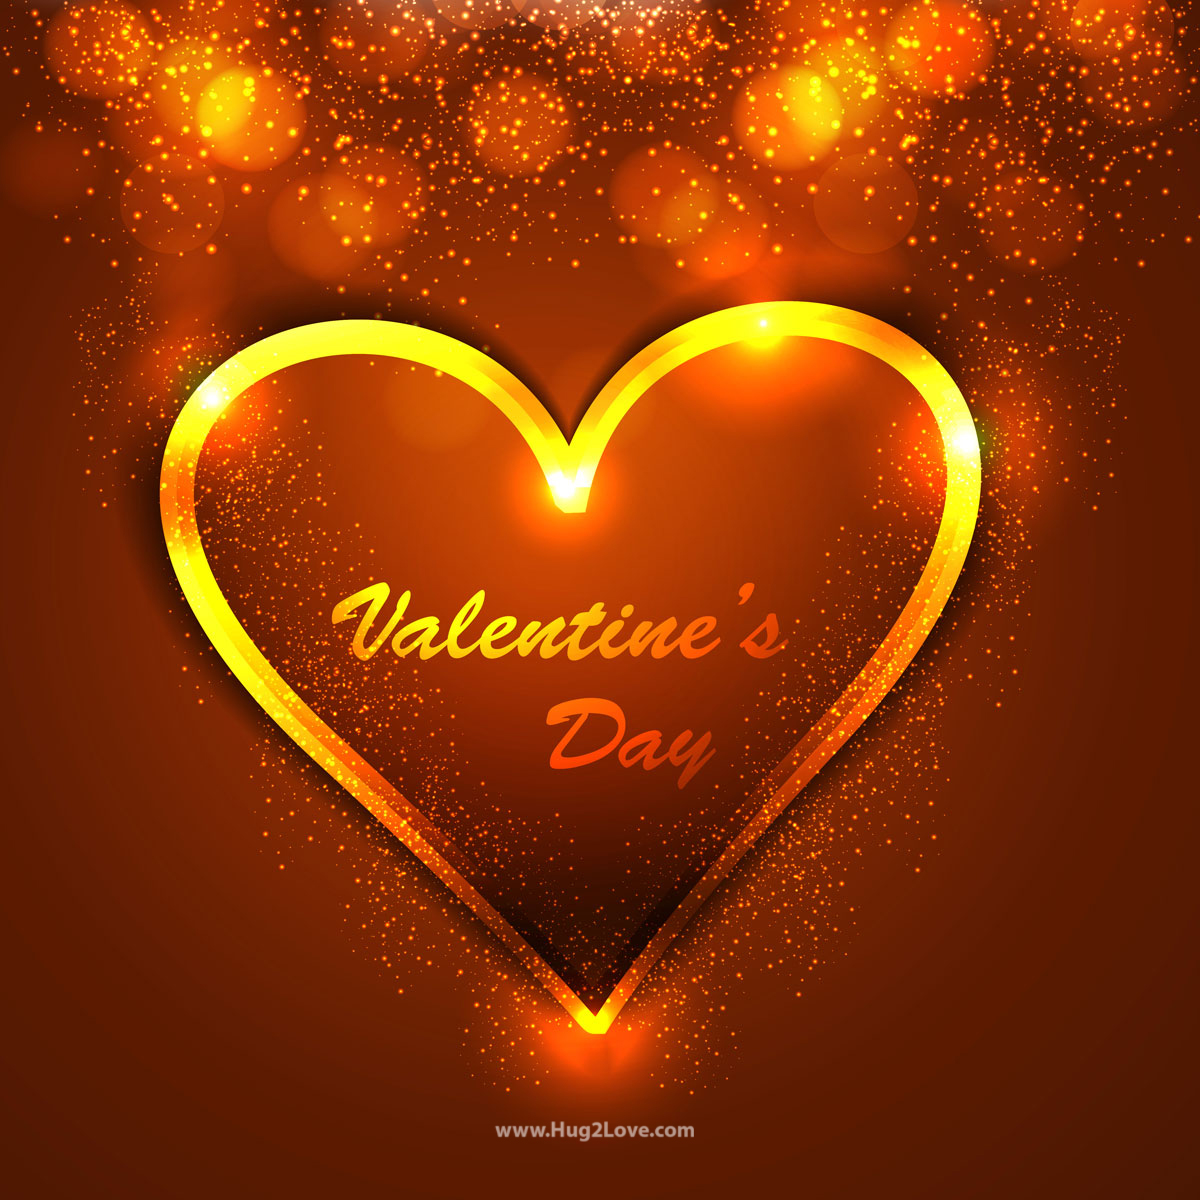 happy valentines day images free 2016